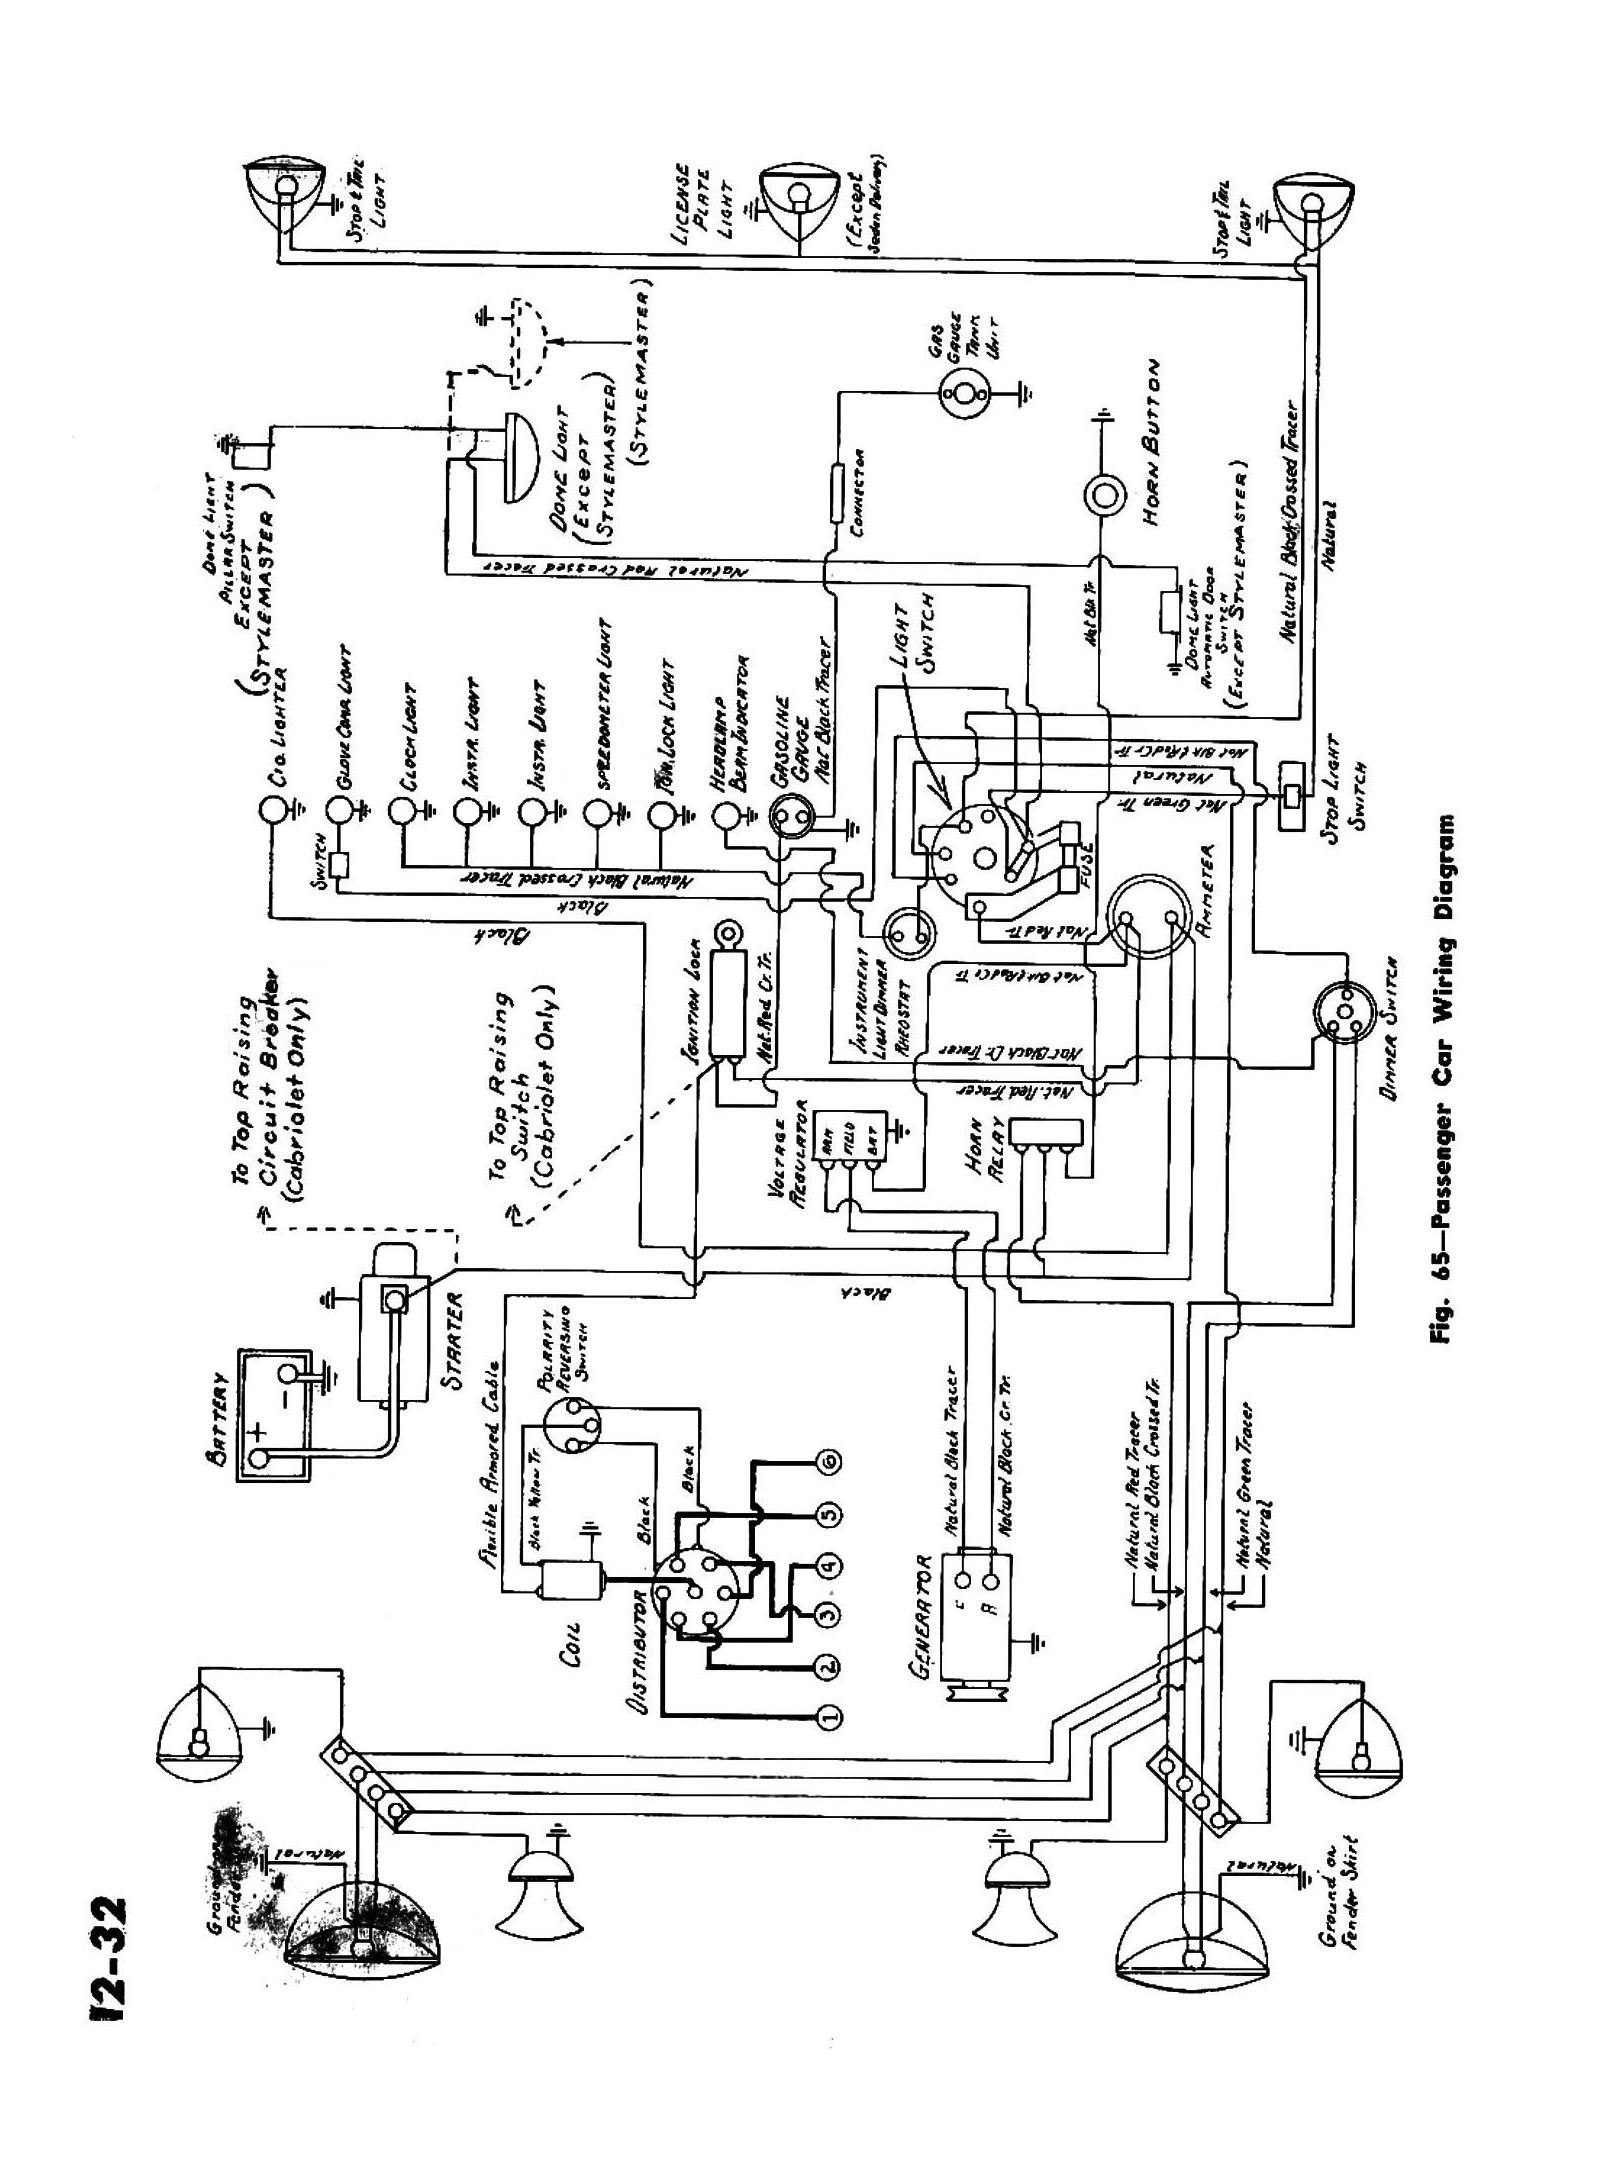 45car chevy wiring diagrams electrical circuit diagrams pdf at gsmx.co